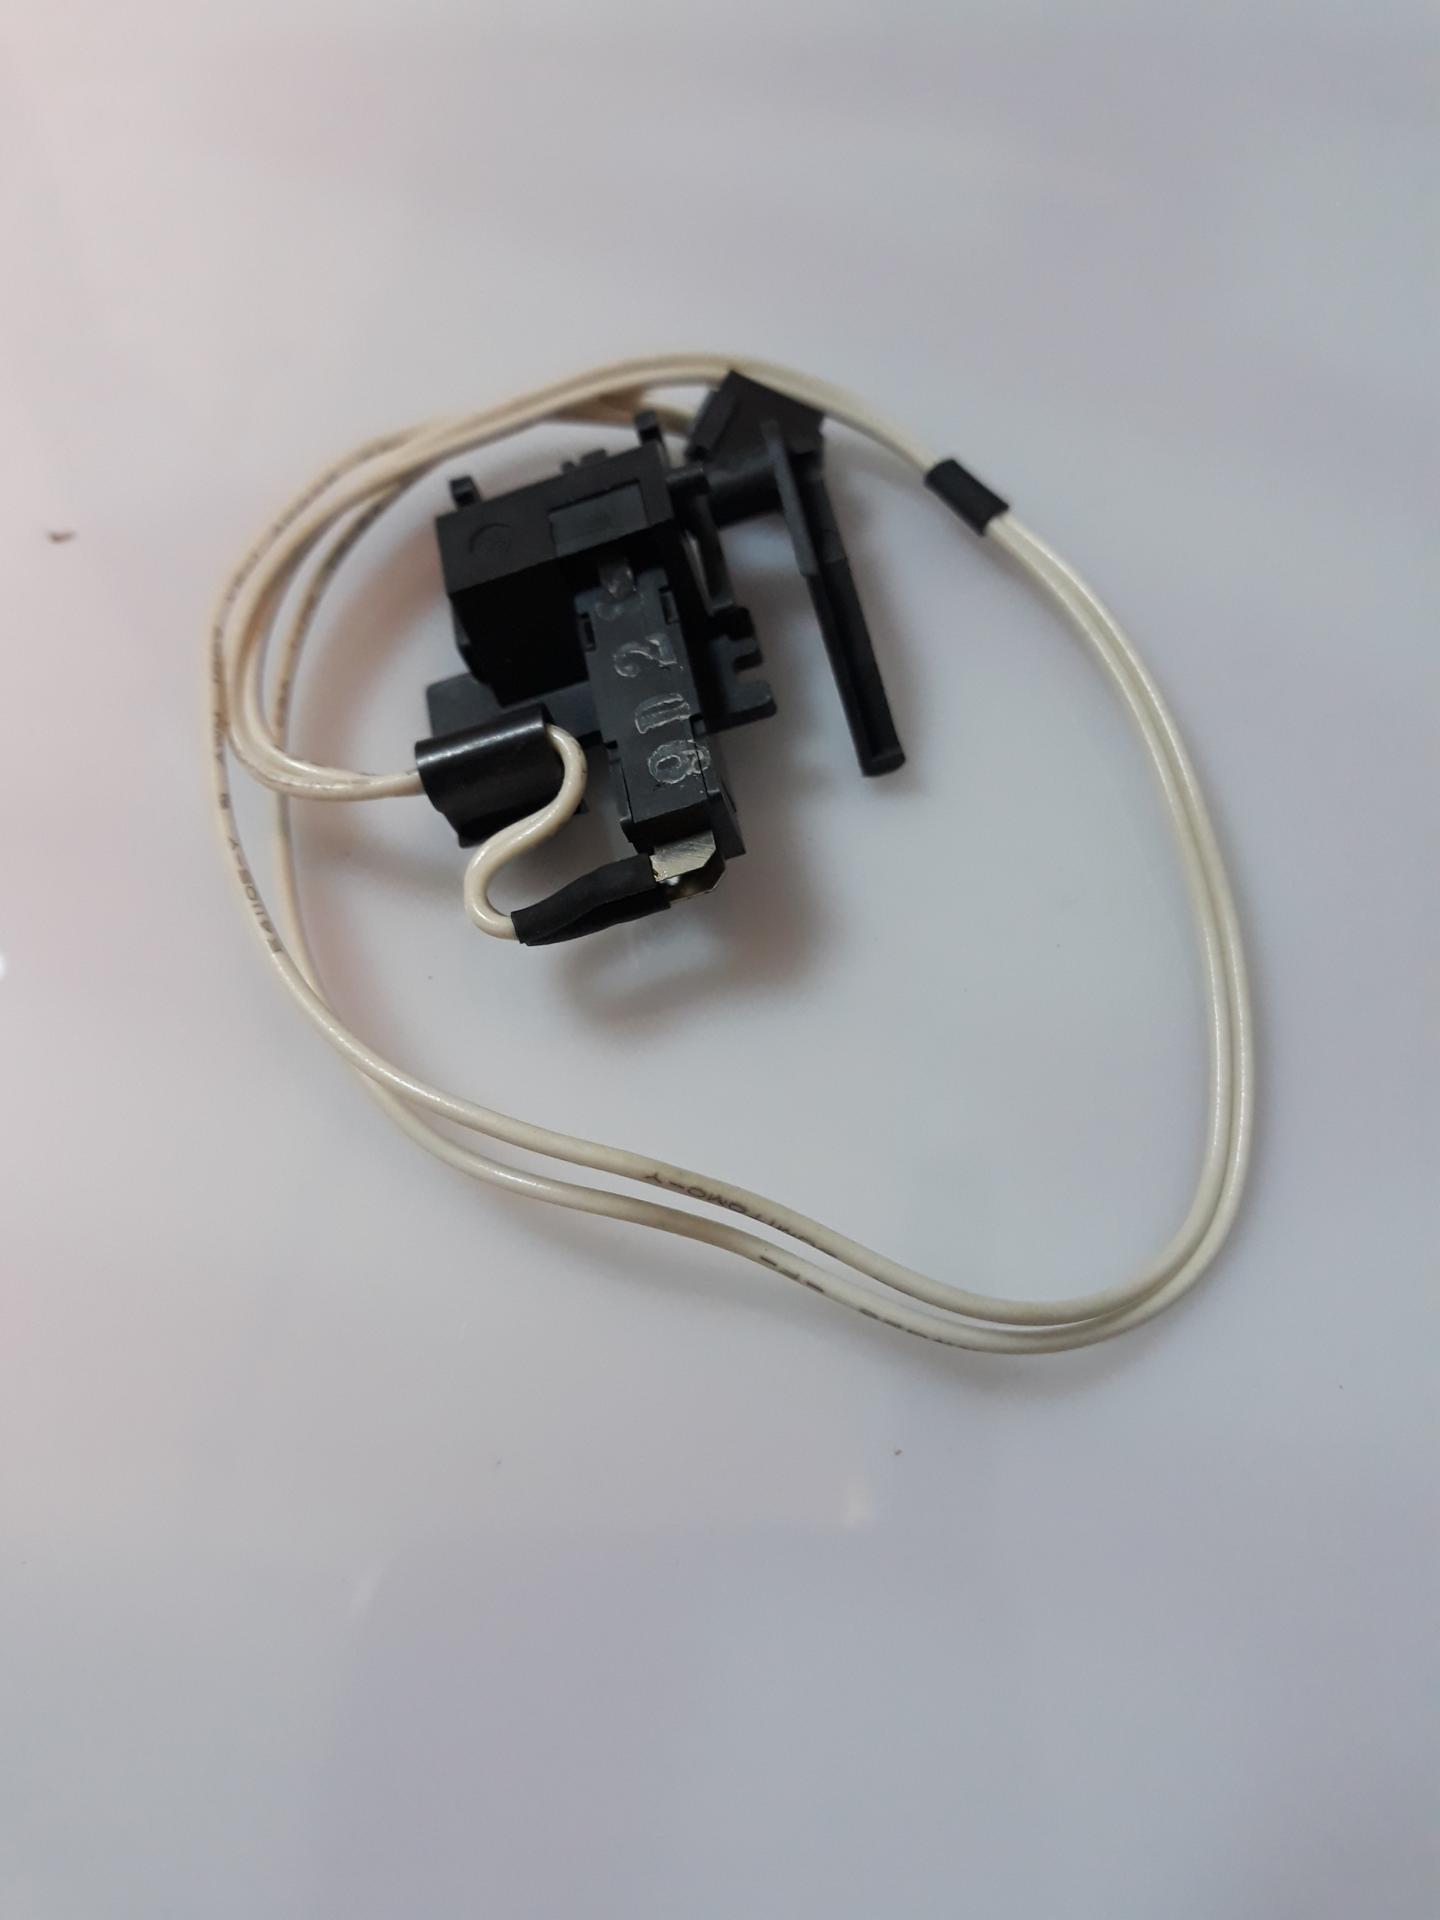 EPSON 2000038  PAPER END SWITCH  LX-1050